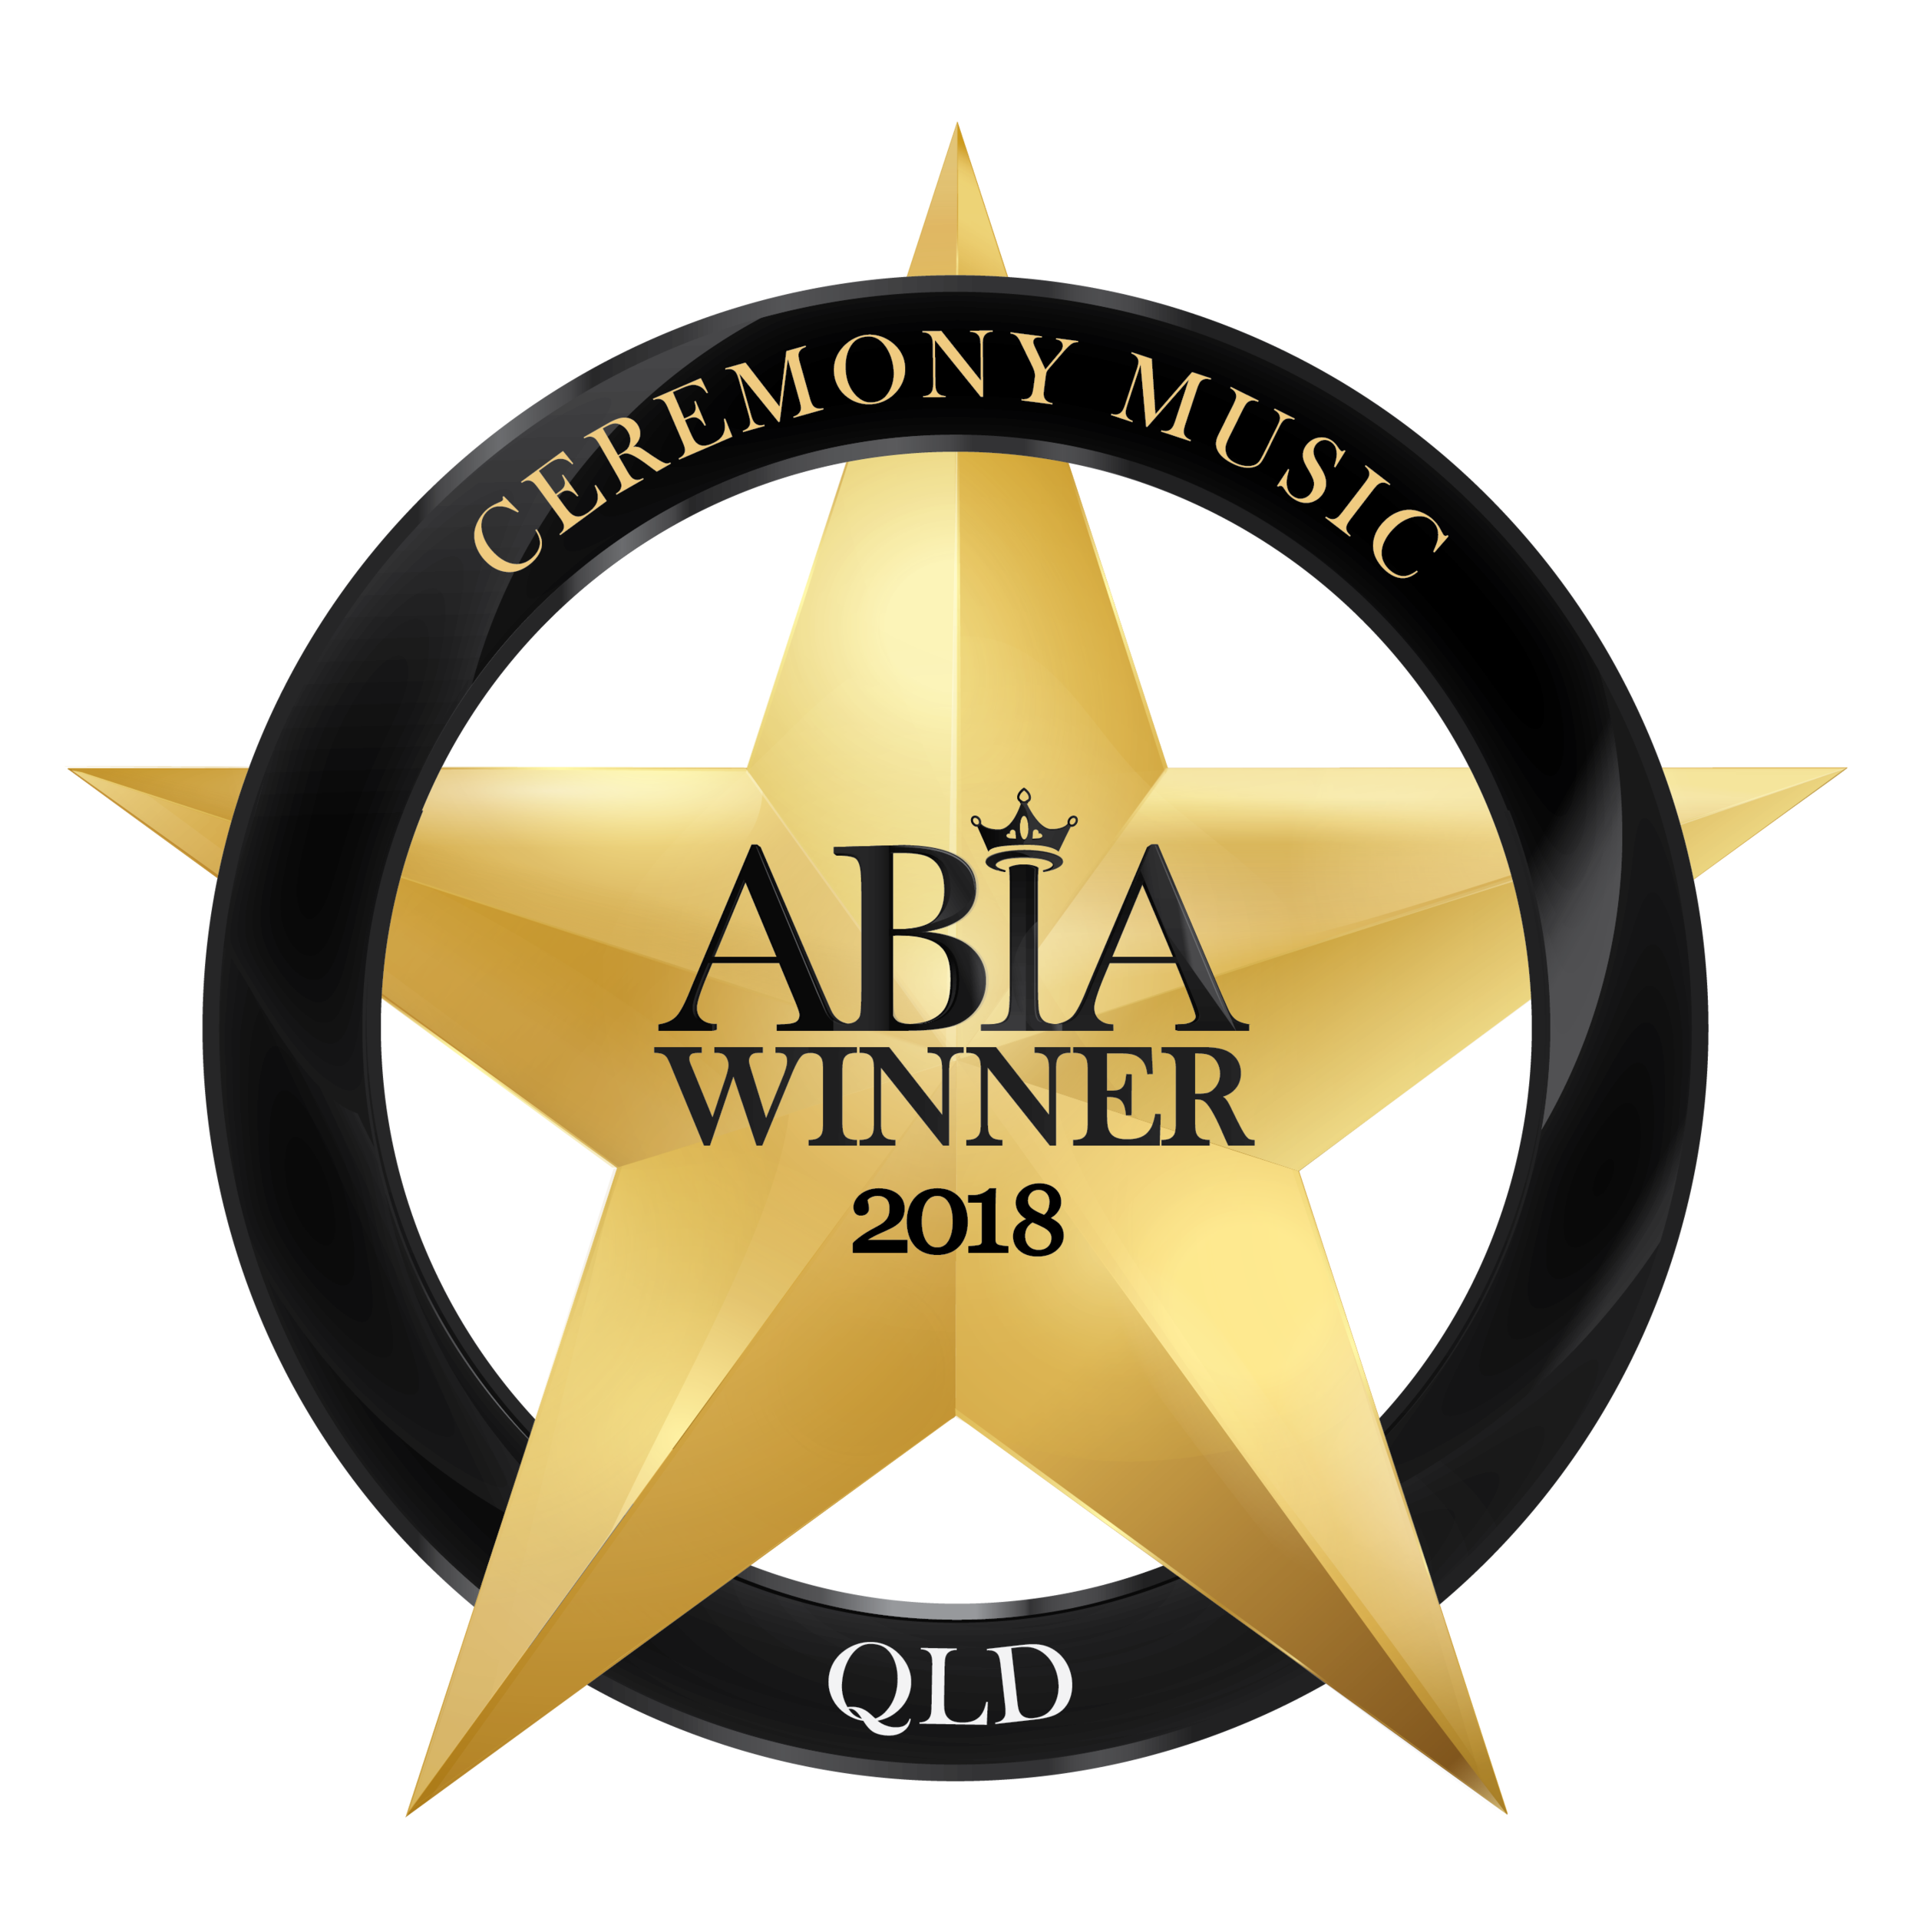 2018-QLD-ABIA-Award-Logo-CeremonyMusic_WINNER.png